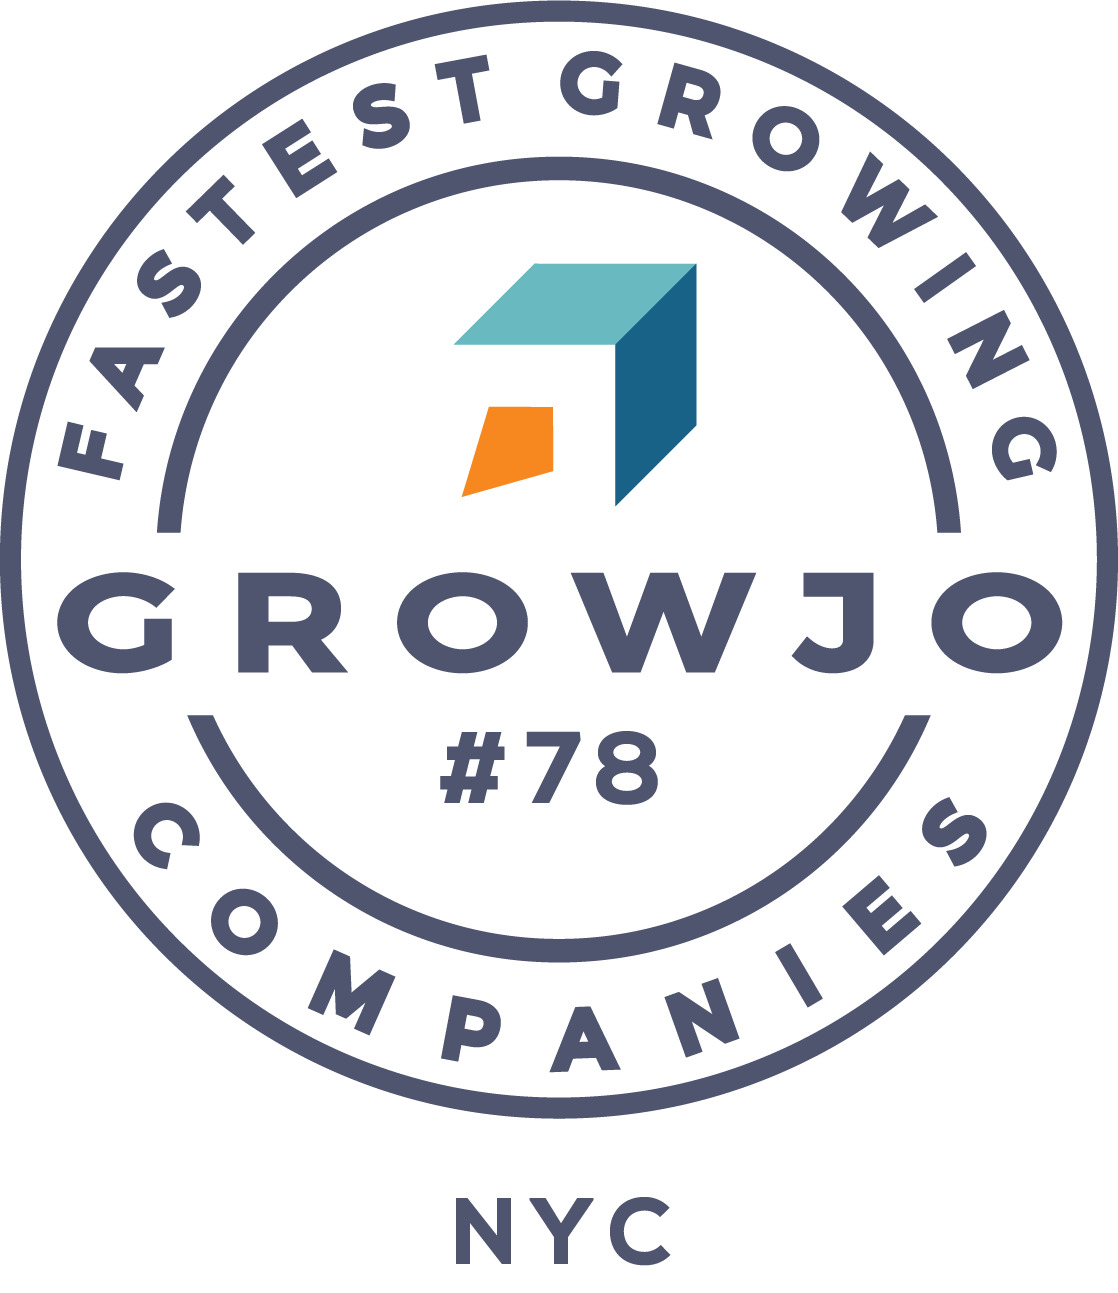 Congratulations are in order! 🎉 Braze ranked #78 on @GrowJoUS's list of Fastest Growing Companies in NYC! ##nycjobs #tech #martech #data https://t.co/xSqCxlGf10